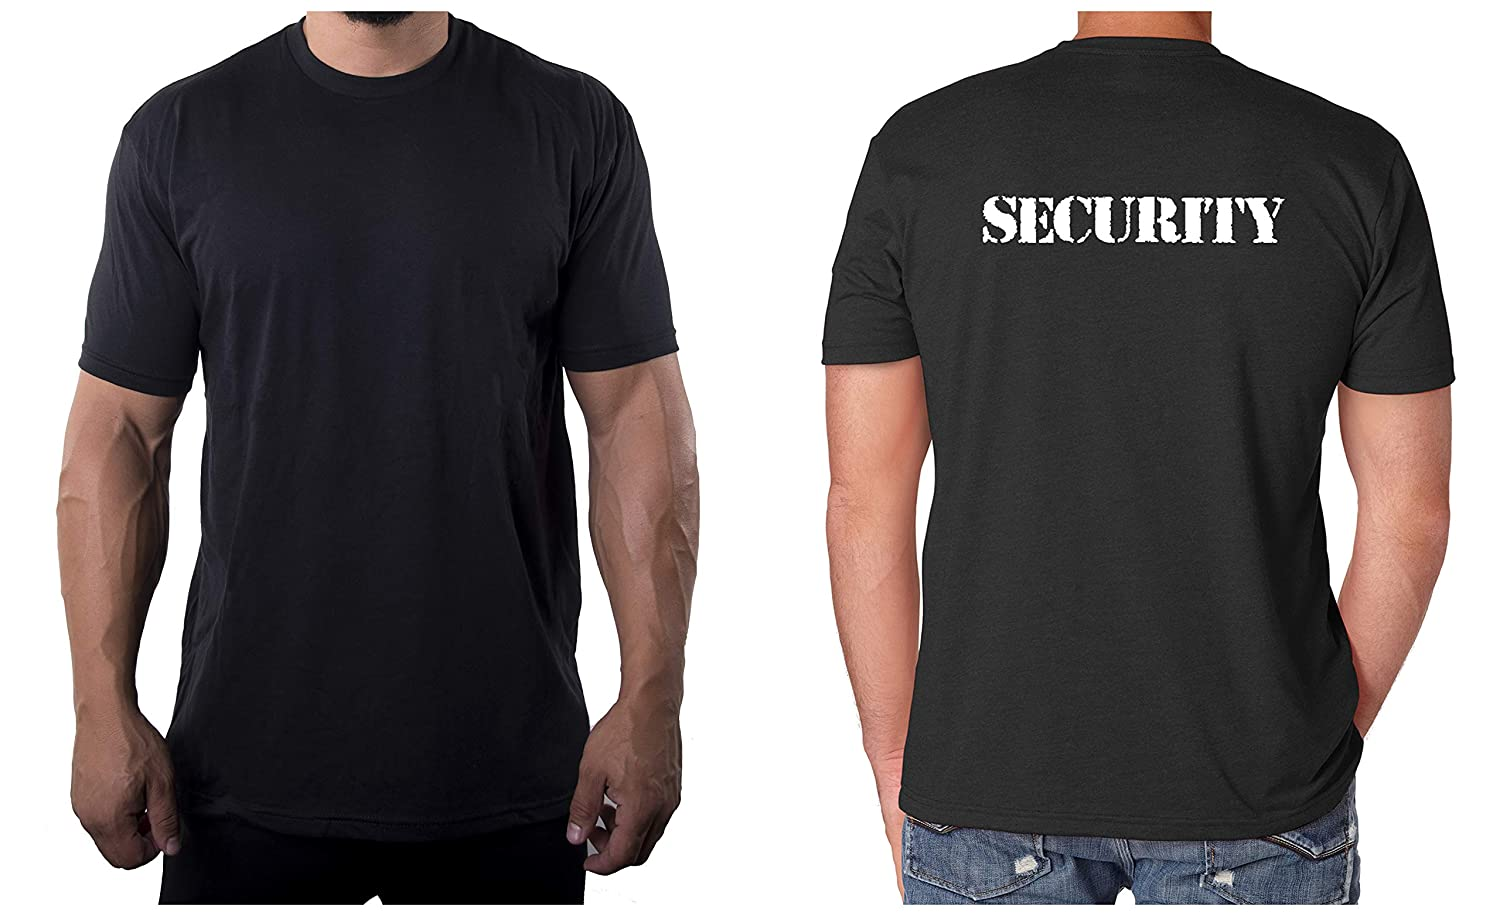 Amazon com: Mato & Hash Security T-Shirts| Event Safety